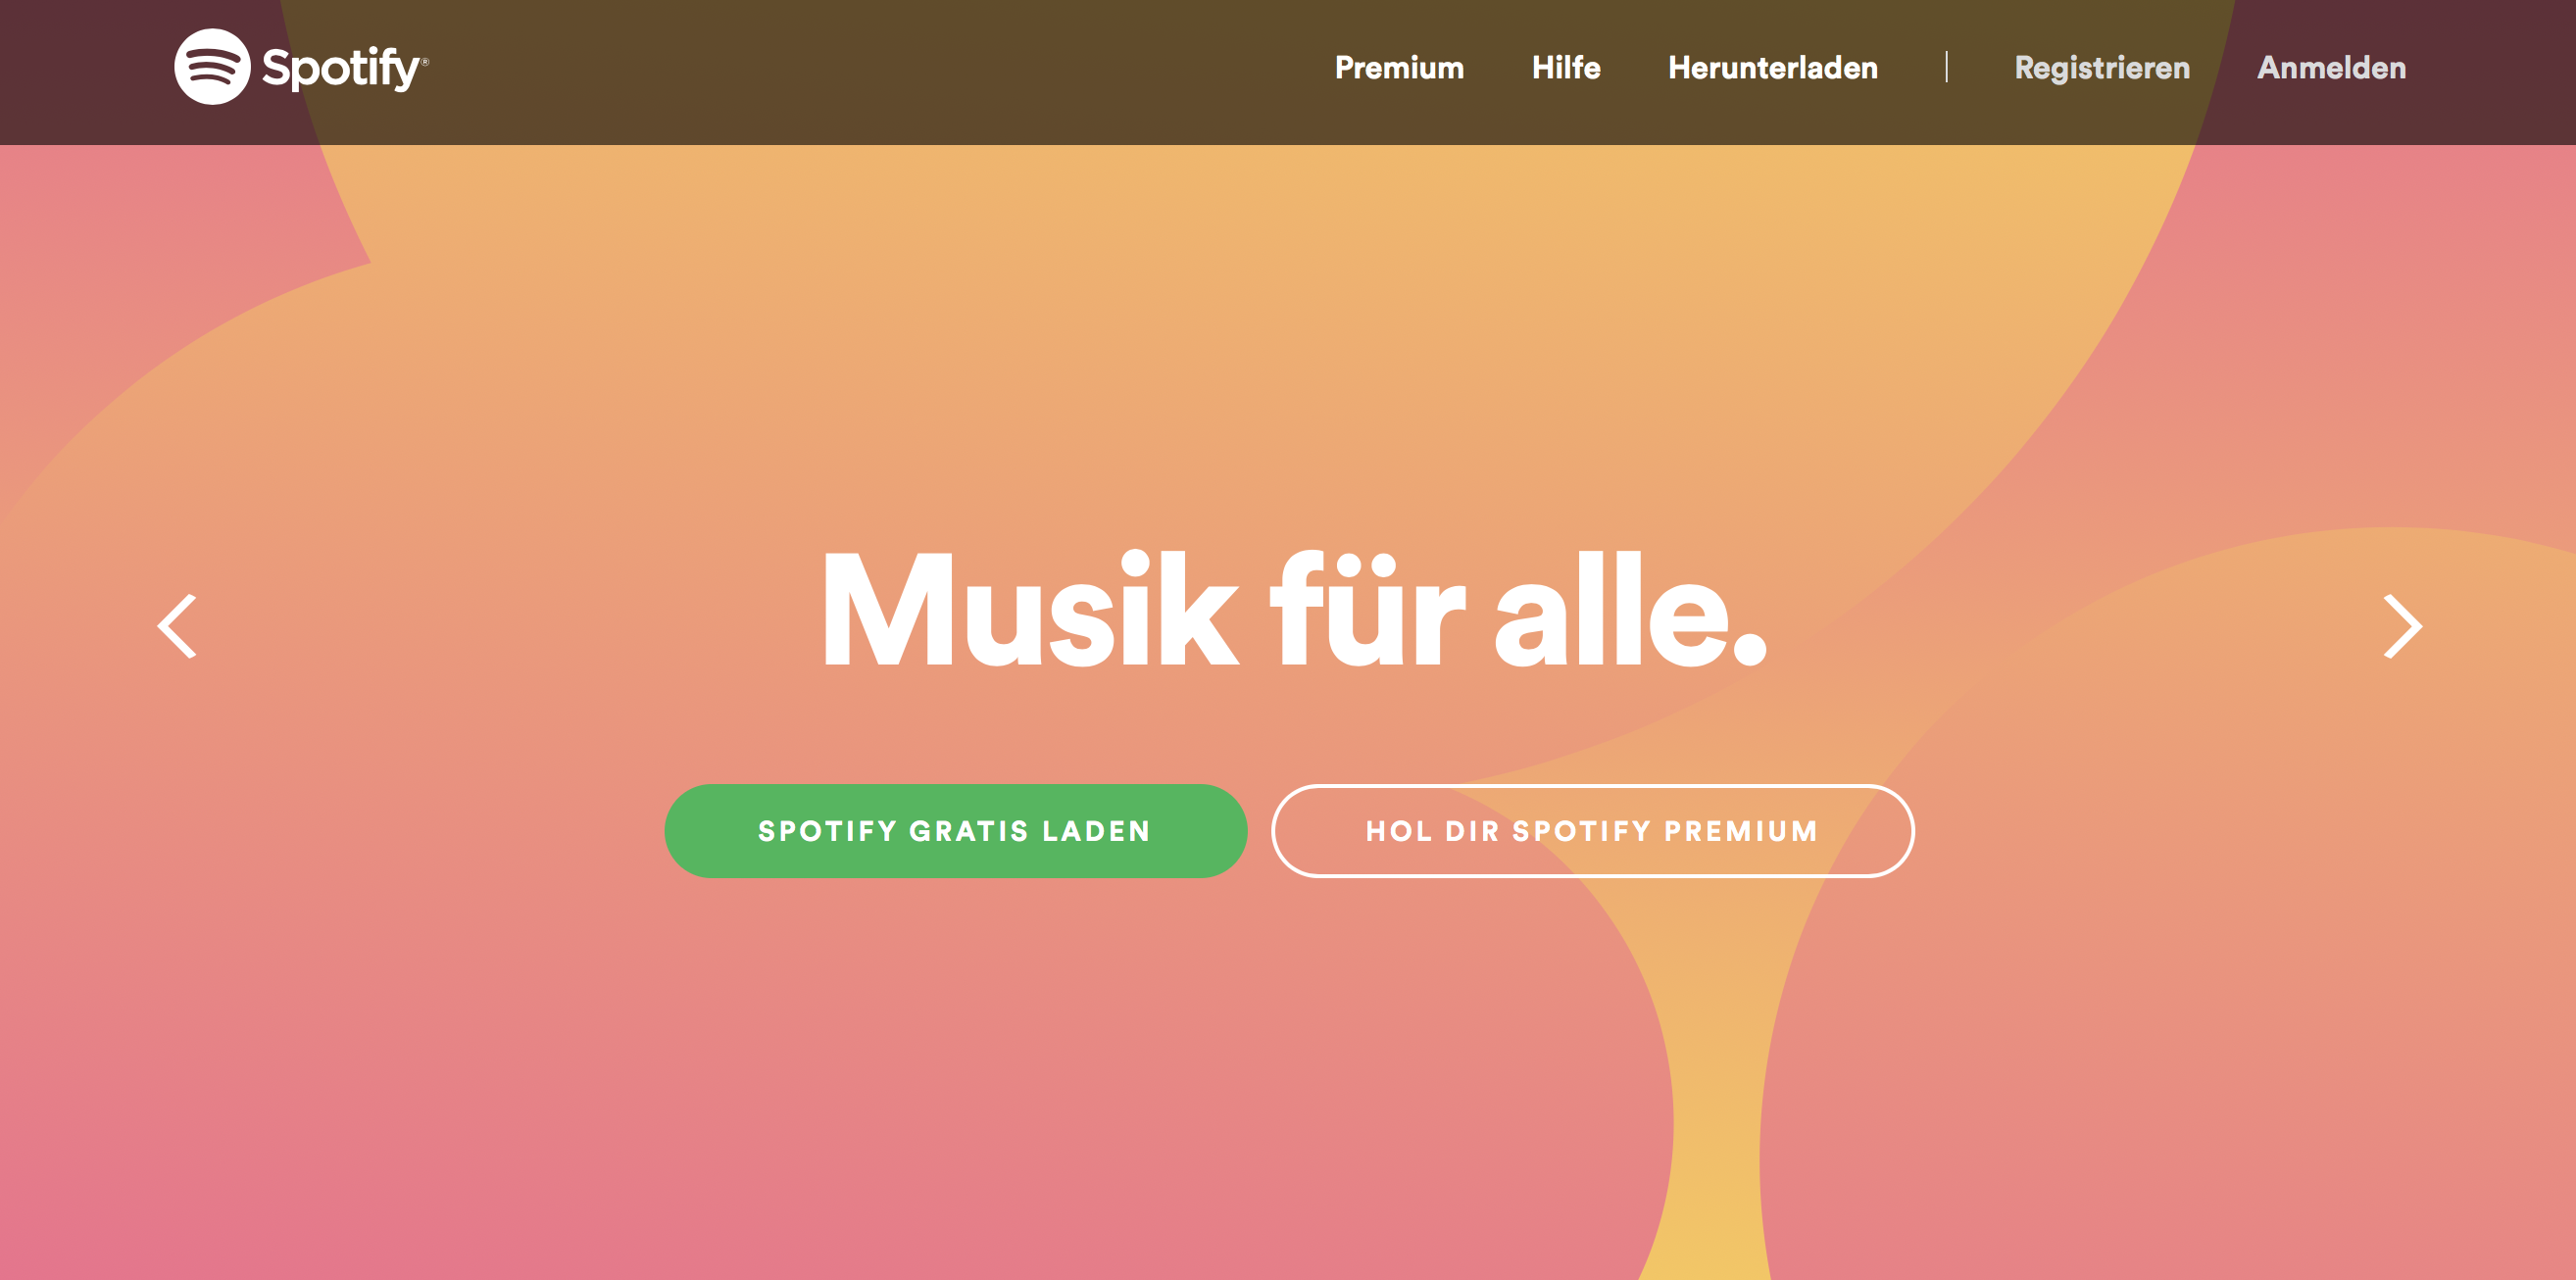 Der Musik-Streamingdienst Spotify hat über 75 Millionen User.